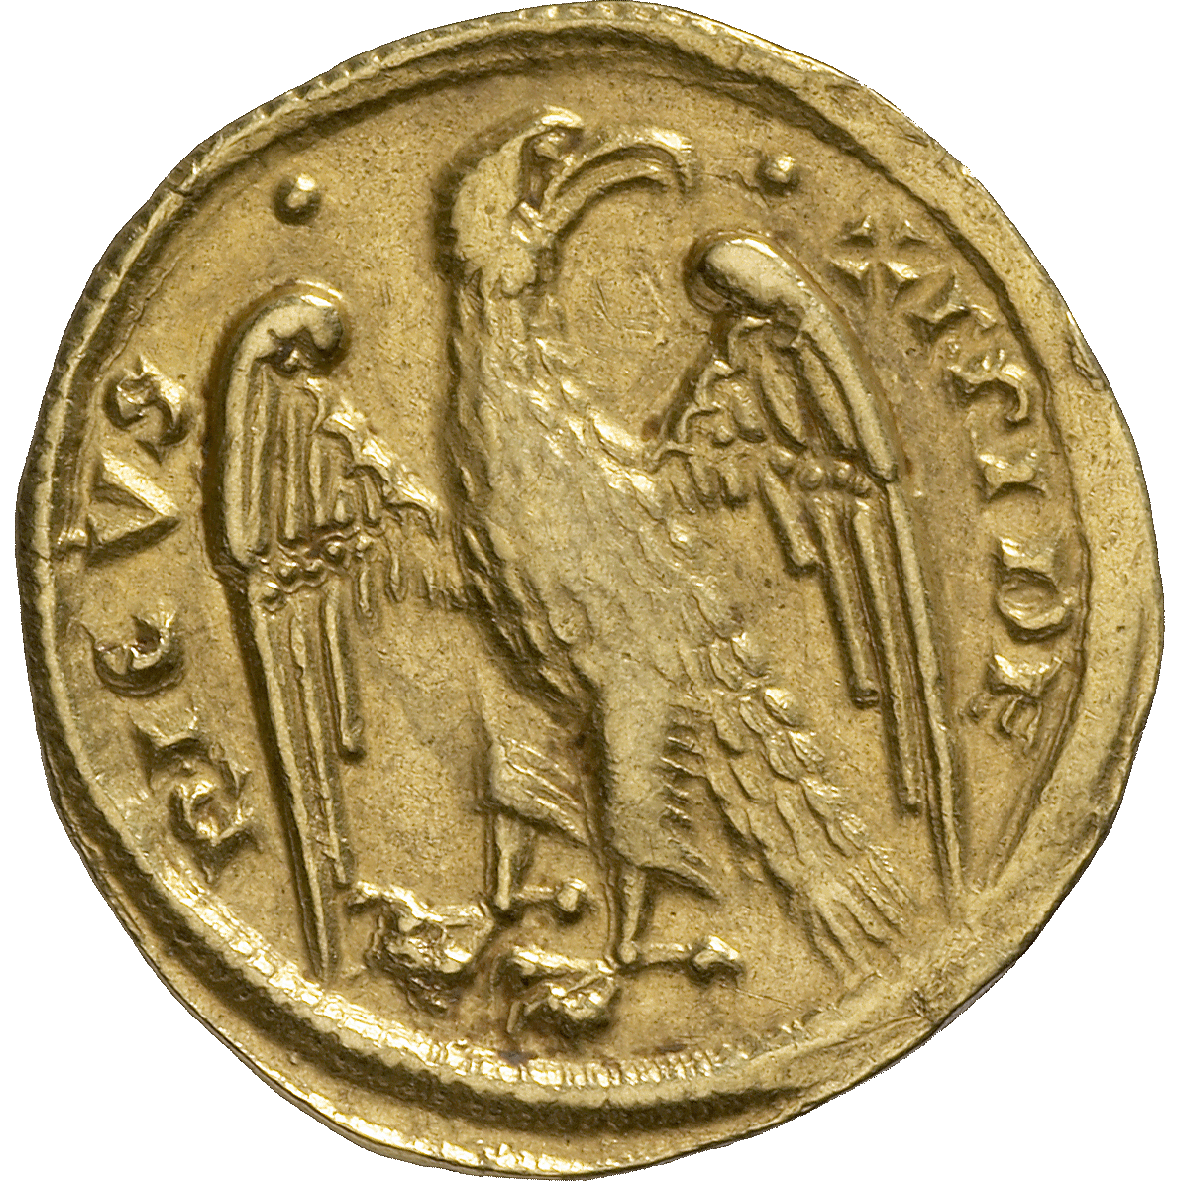 Holy Roman Empire, Frederick II of Hohenstaufen, 1/2 Augustalis (reverse)